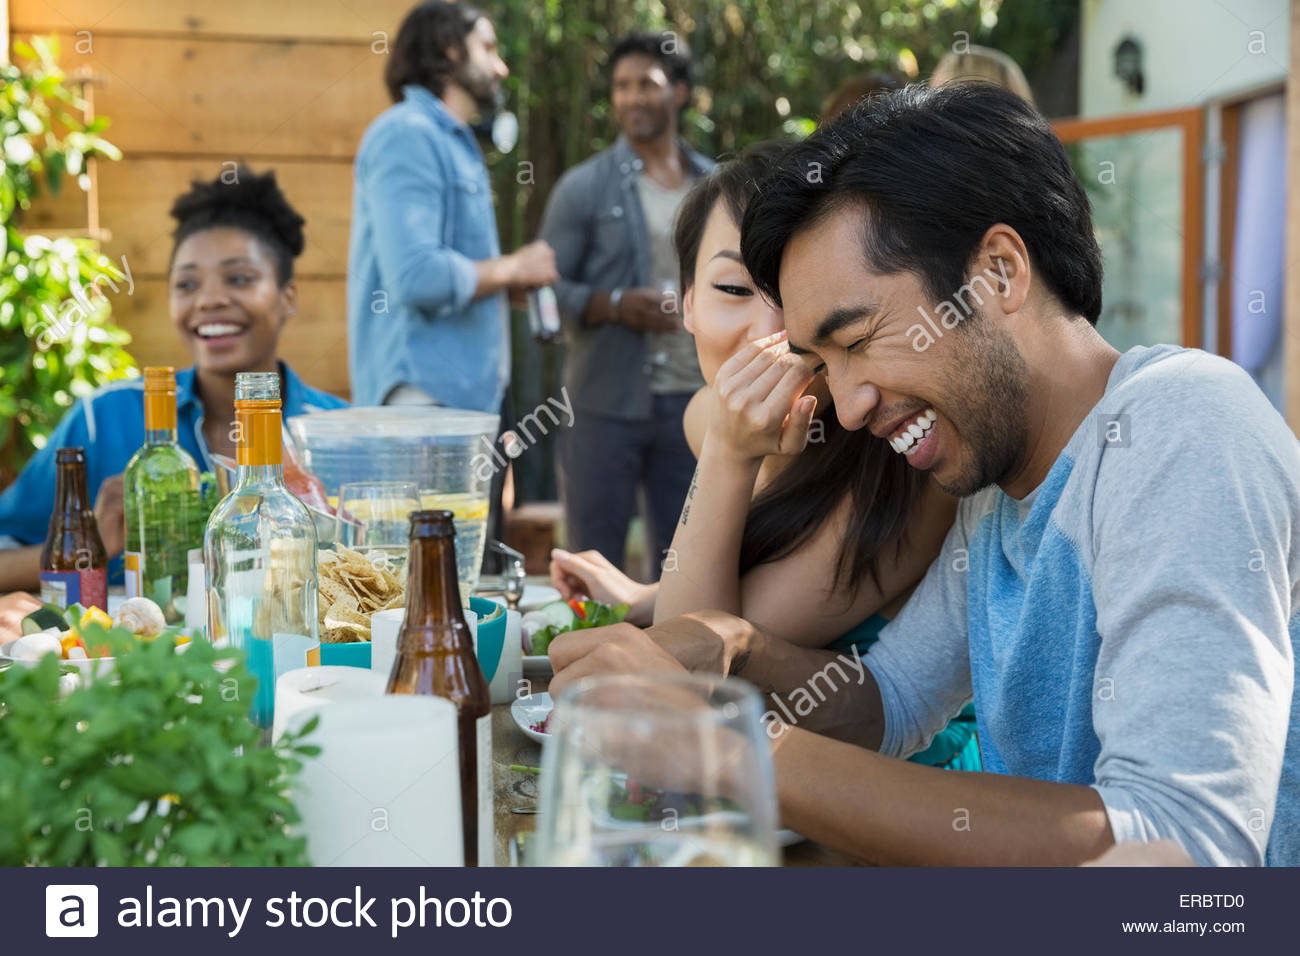 Woman whispering to laughing man at patio table - Stock Image